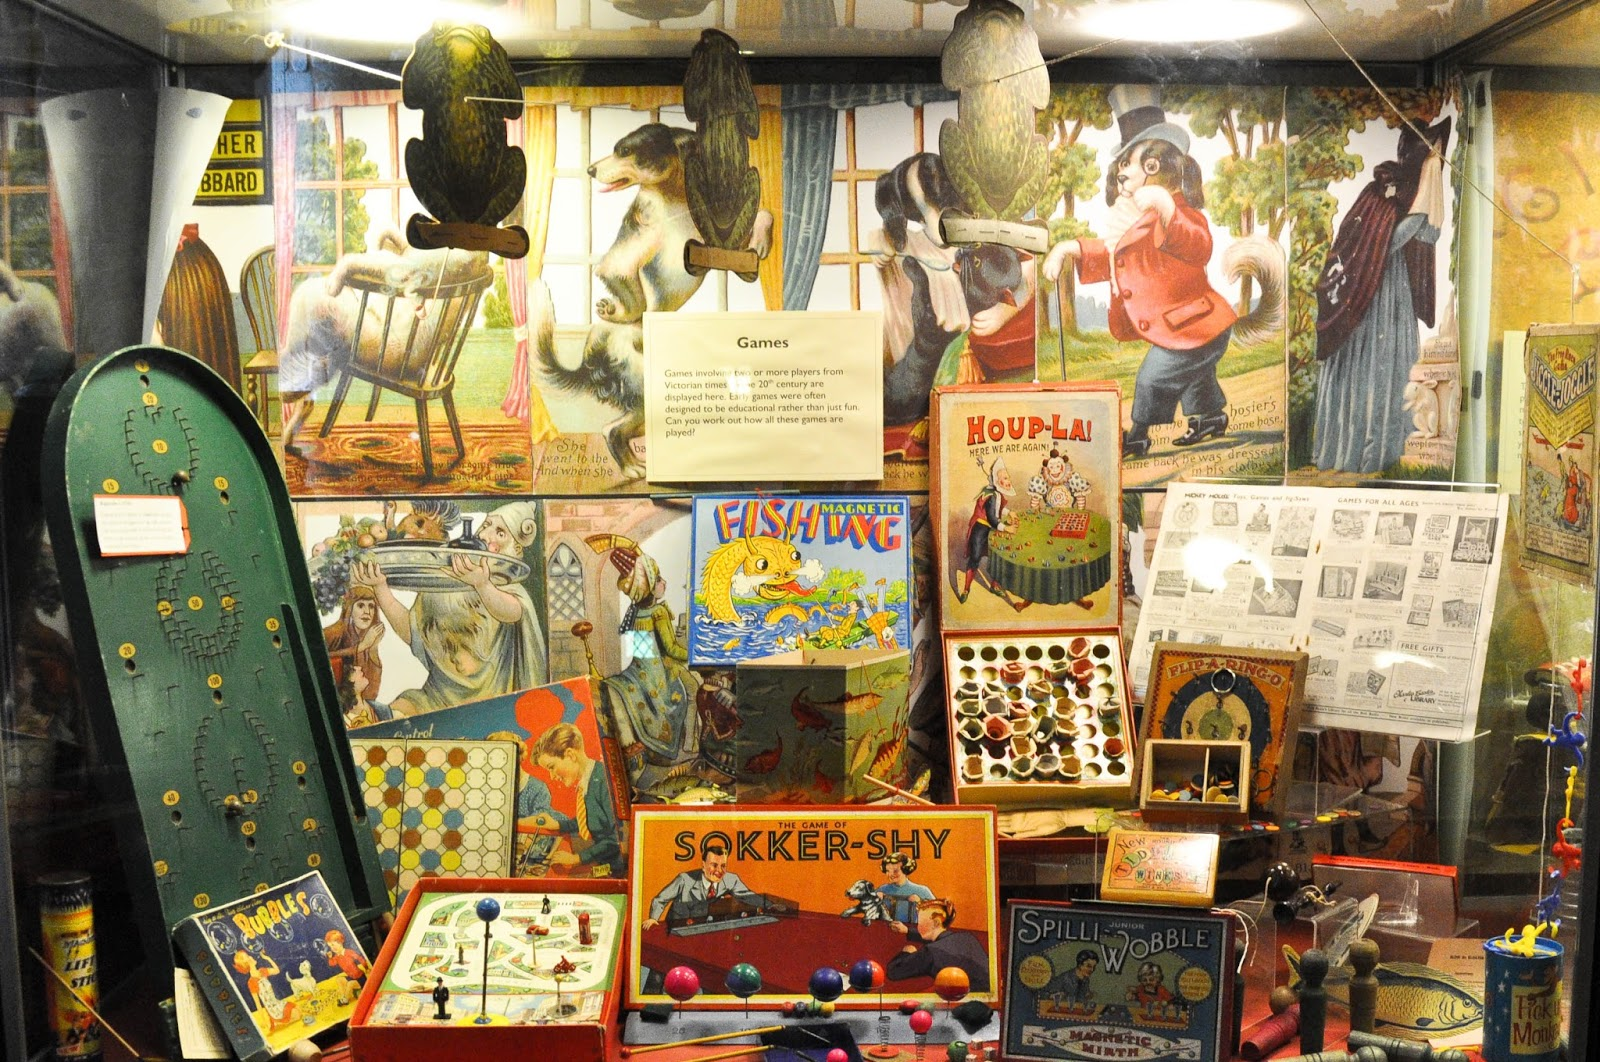 Board games in the museum, Carisbrook Castle, Isle of Wight, UK - www.rossiwrites.com